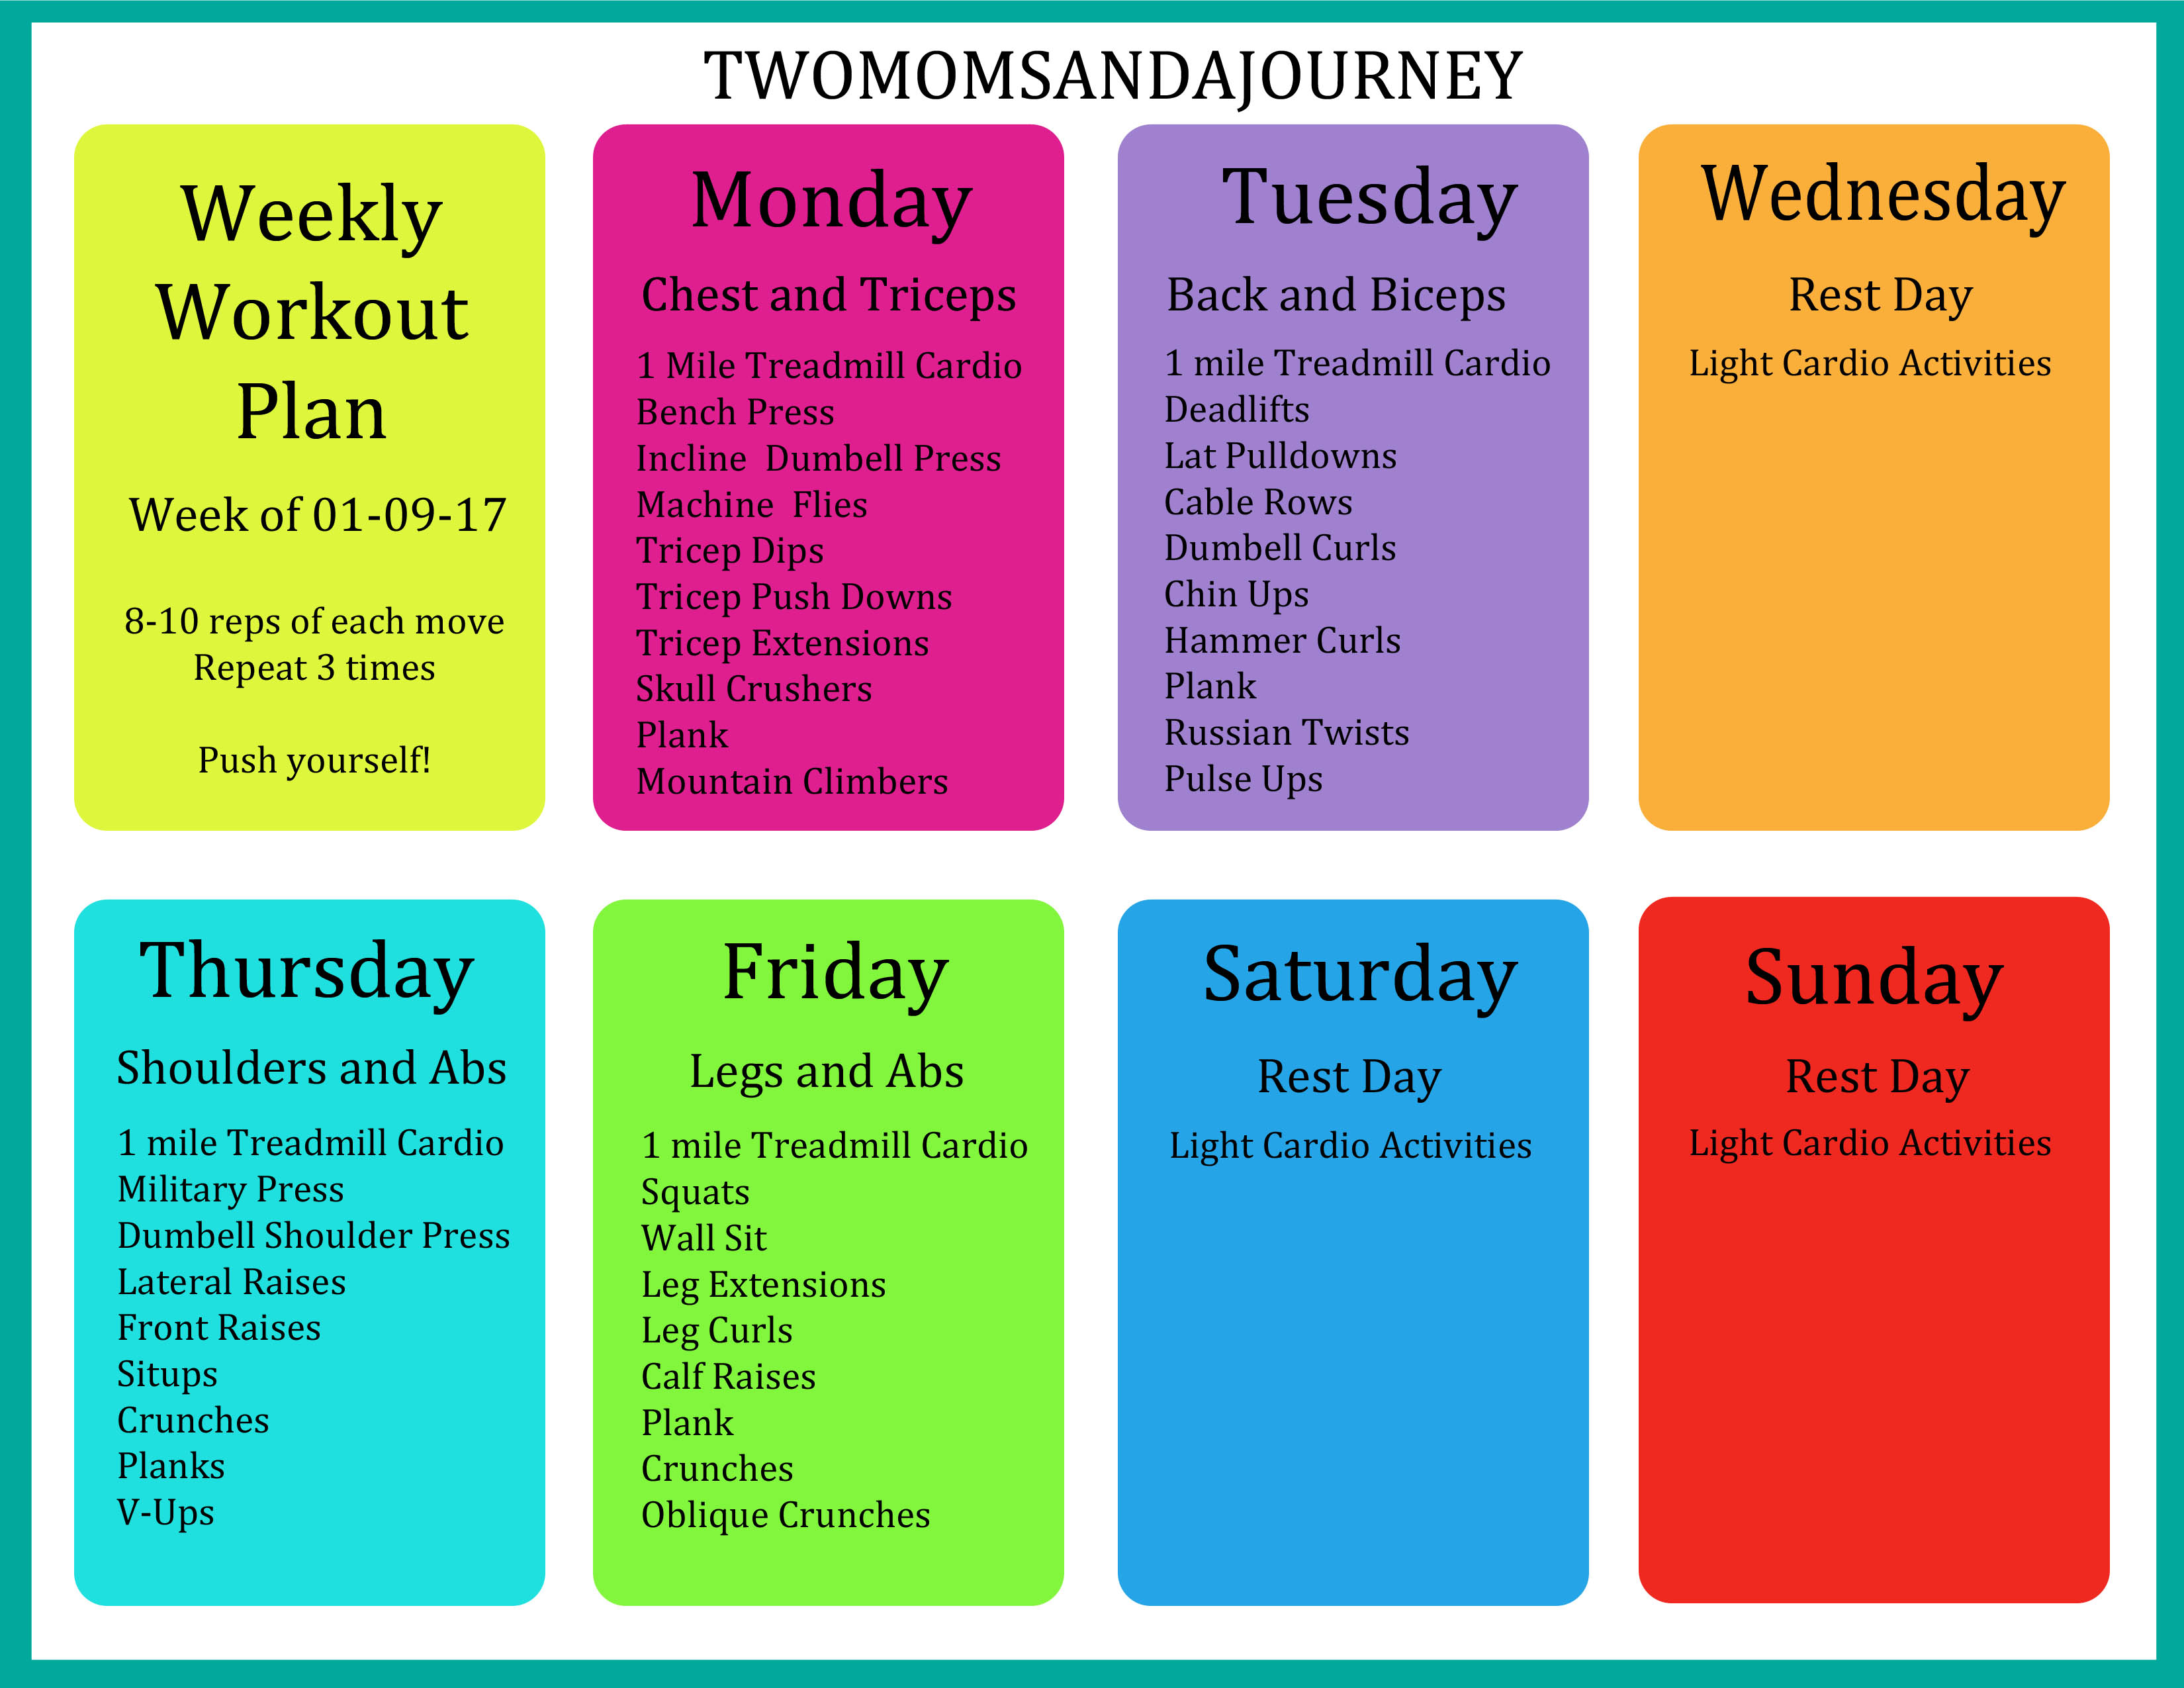 Weekly Workout Plan | Two Moms and a Journey